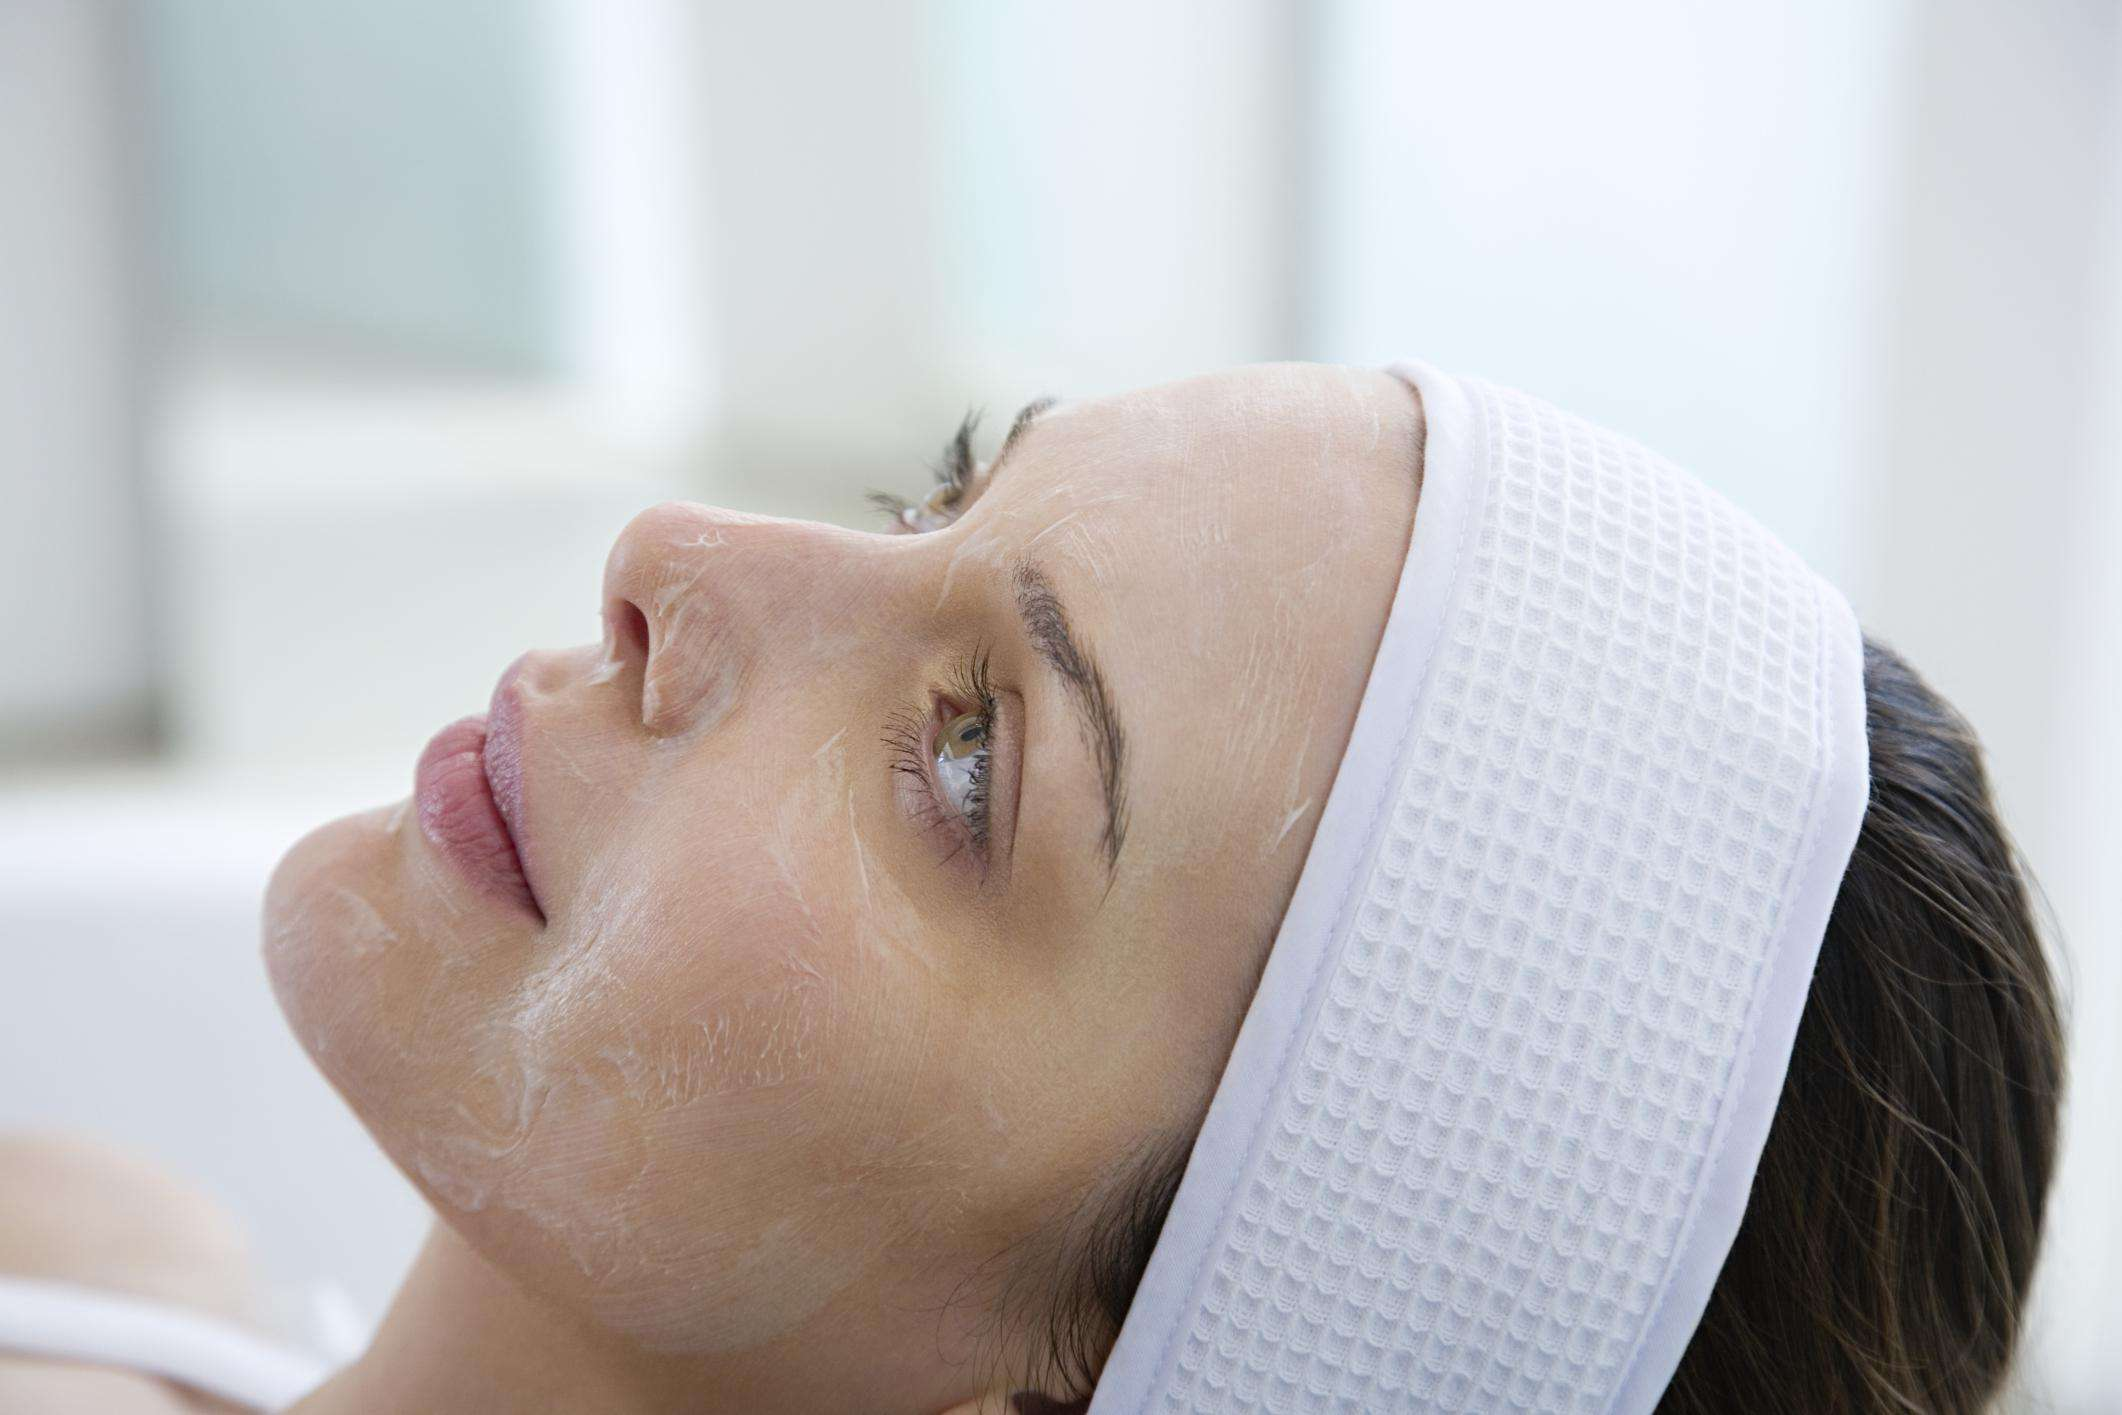 Woman getting a chemical peel facial treatment